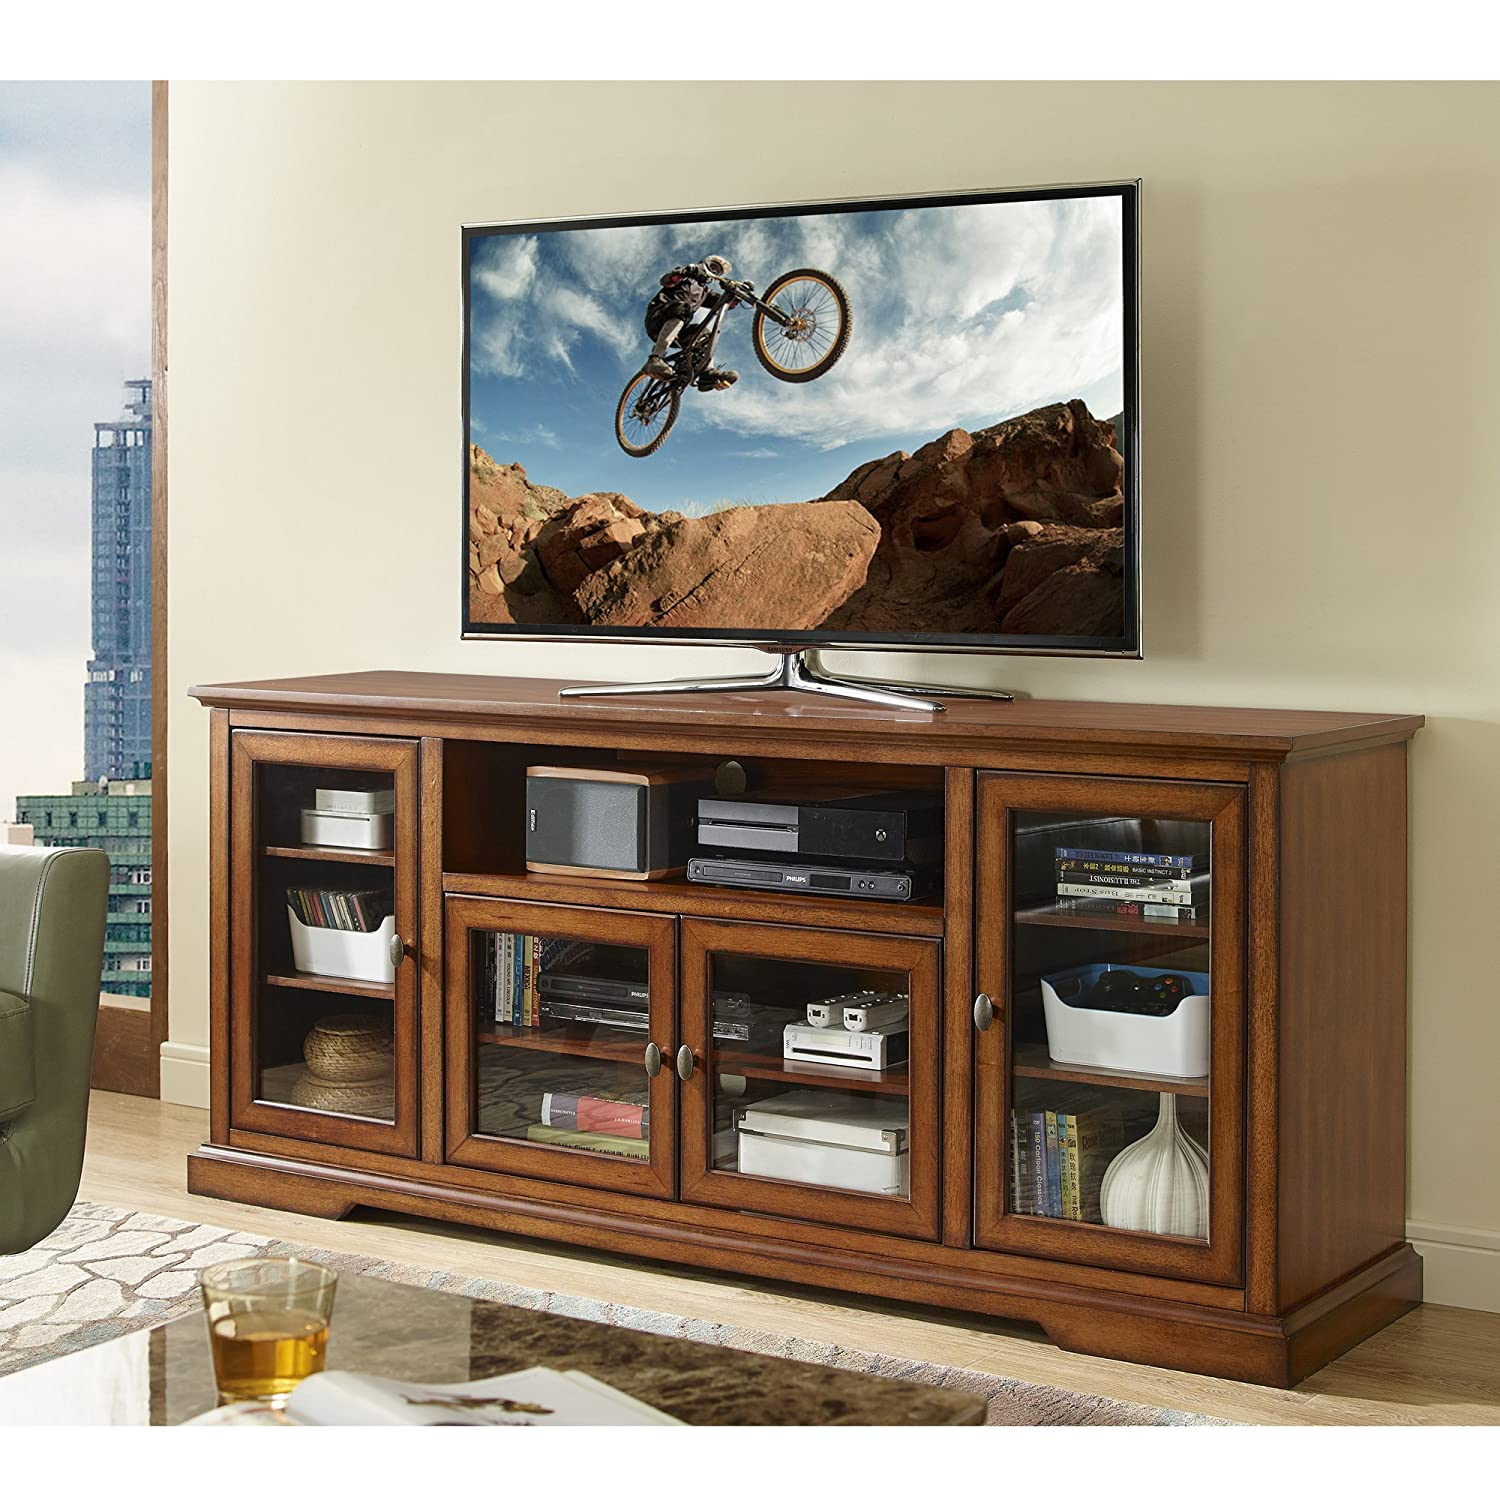 Amazoncom New 70 Inch Wide Highboy Style Wood Tv StandRustic